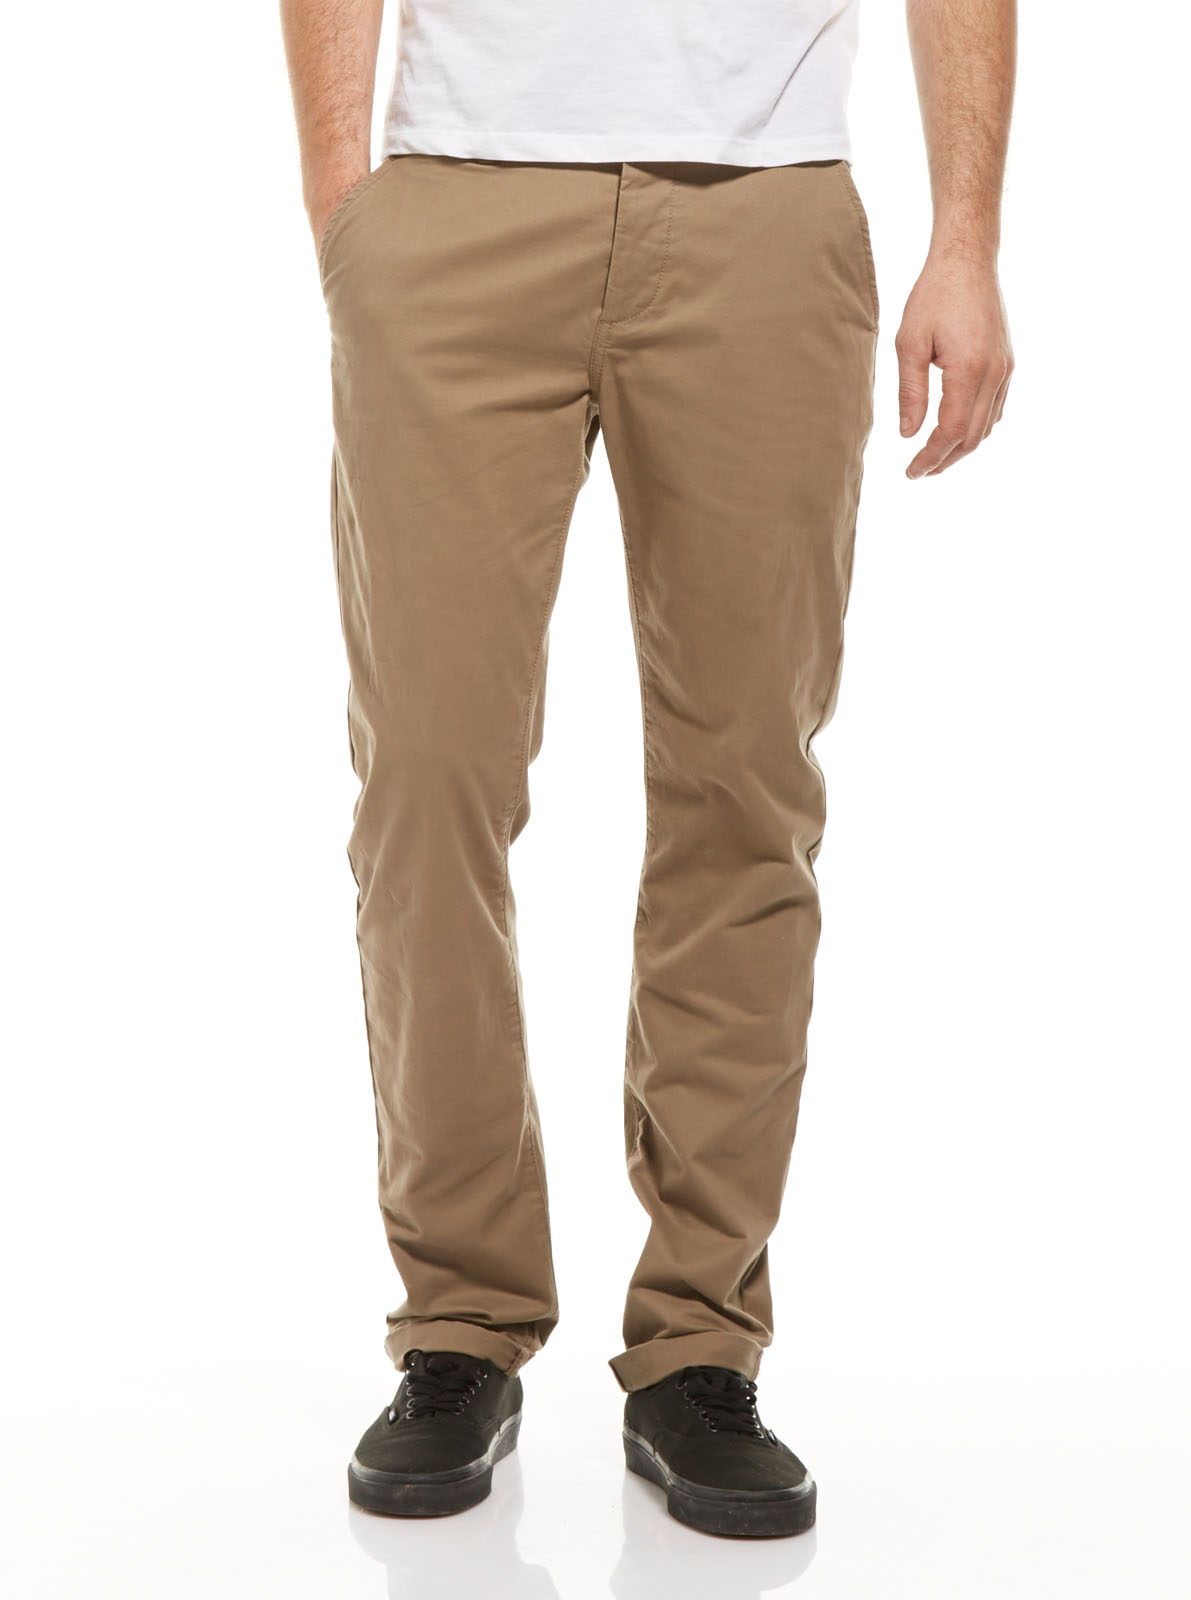 Comfortable Chino Jeans